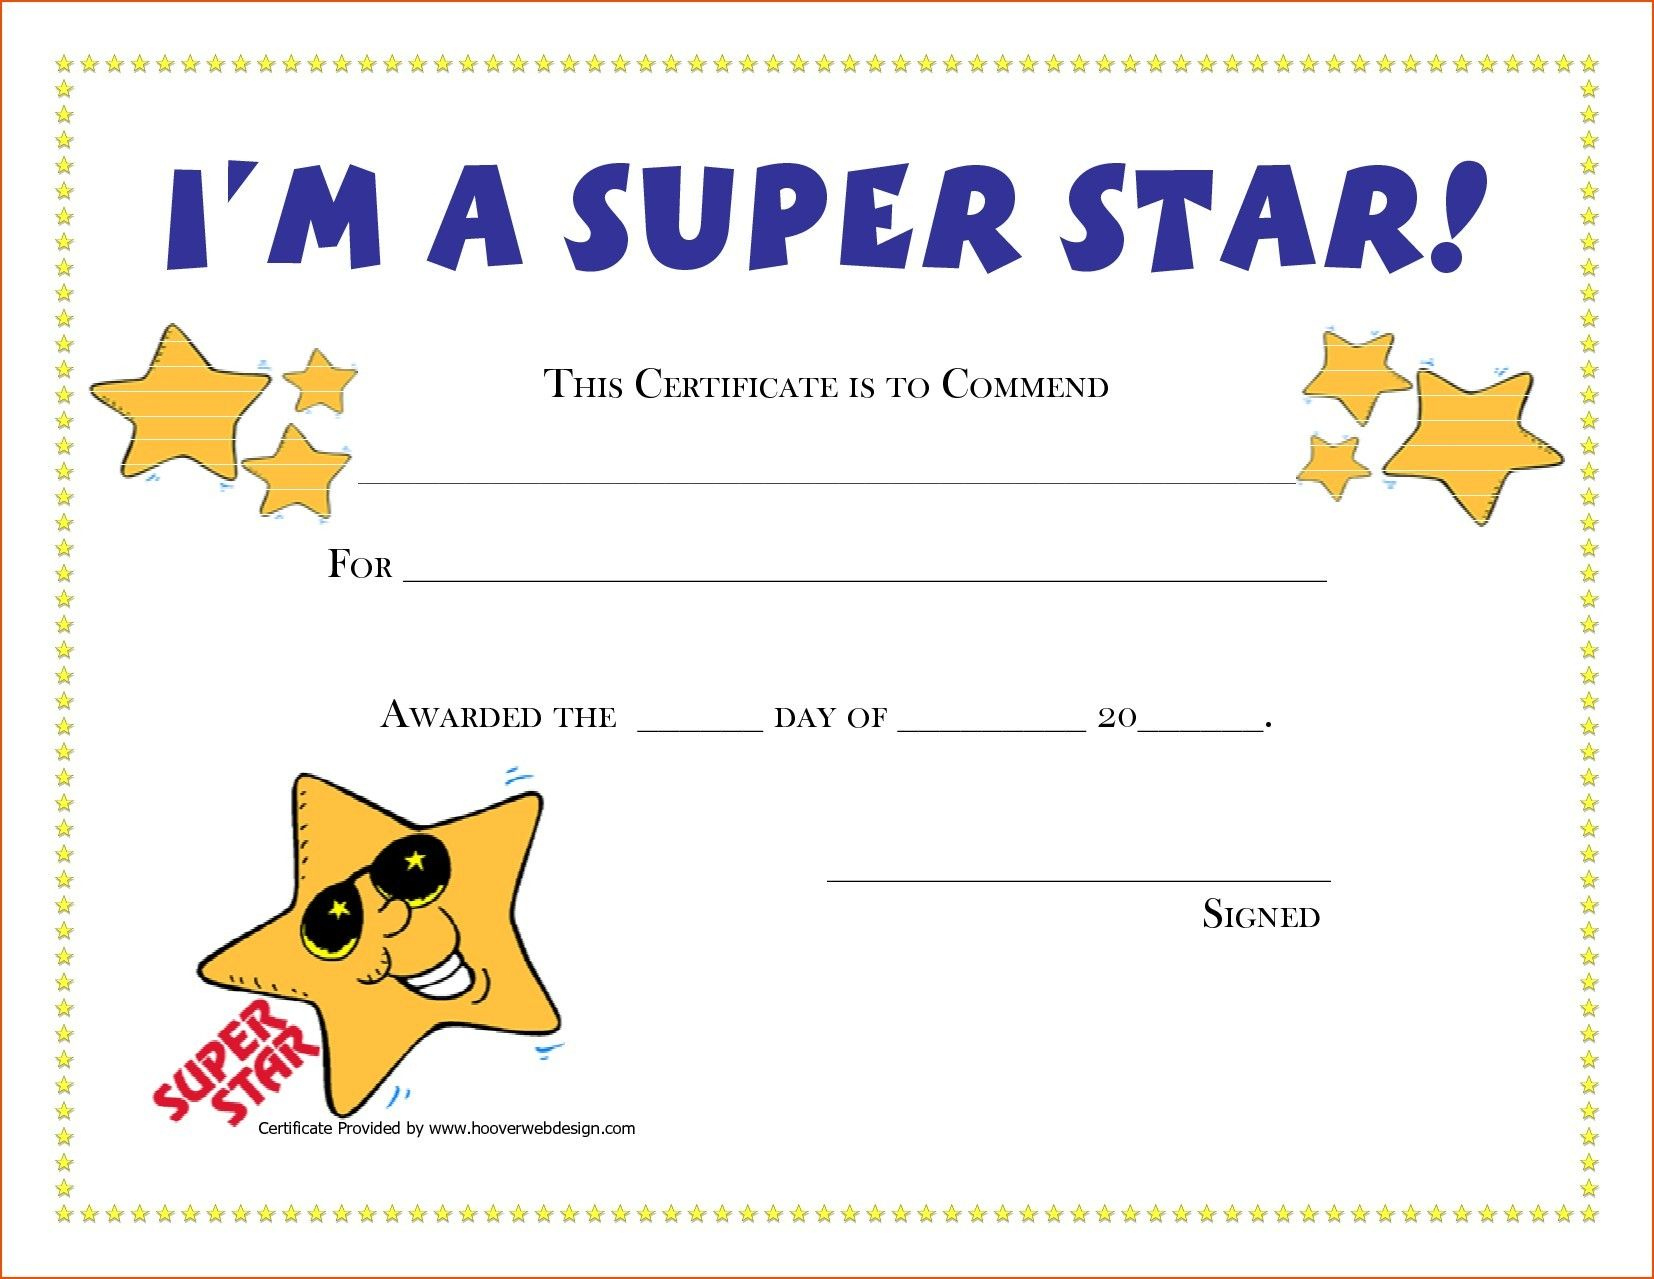 Template Certificate Blank Fresh Template Blank Award with Super Reader Certificate Template